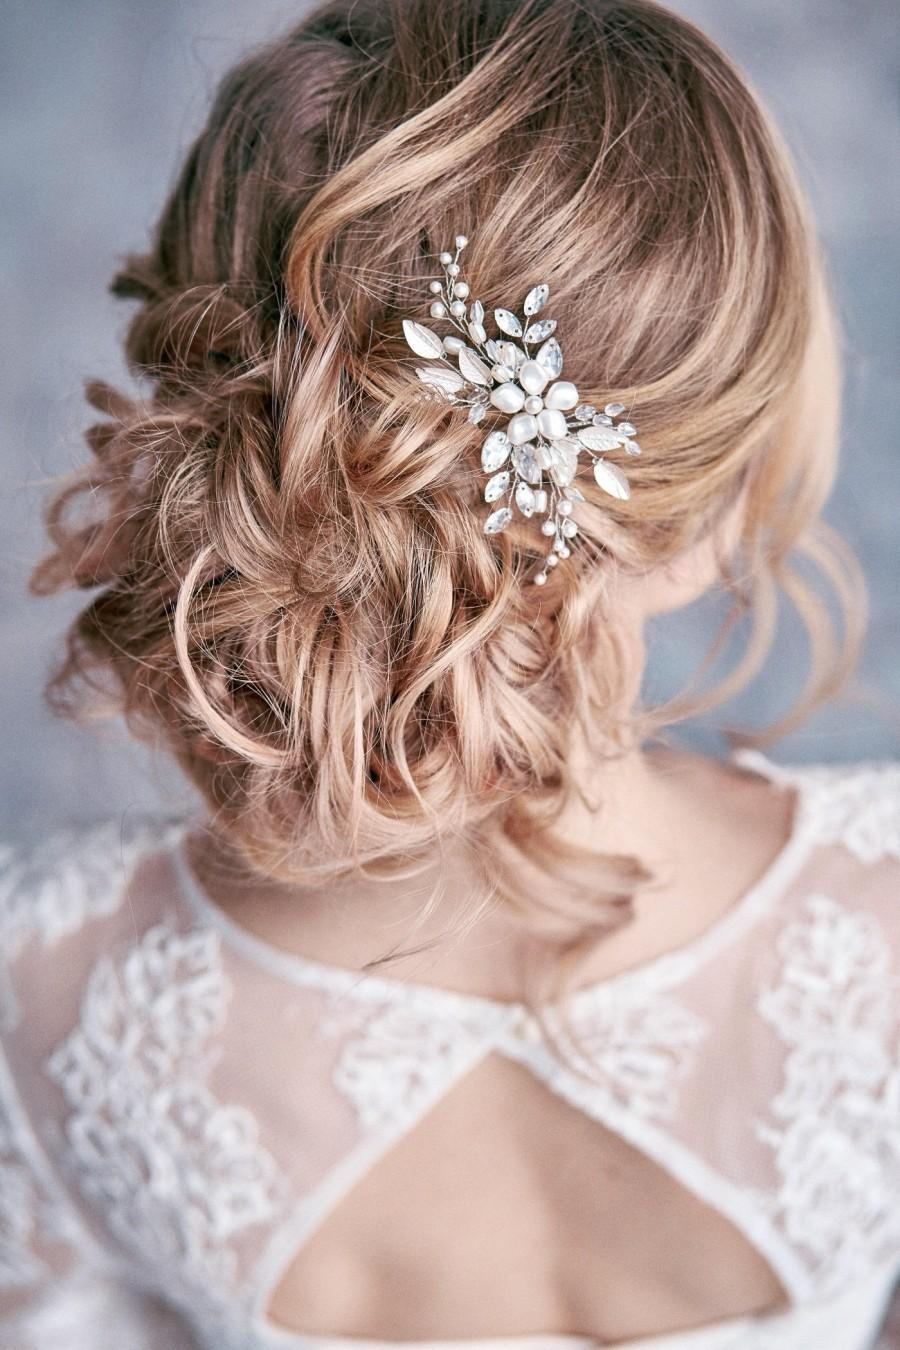 Wedding - Bridal hair pin Bridal hair piece Bridal headpiece Prom hair piece  Wedding headpiece Wedding hair piece Bridal hair accessories